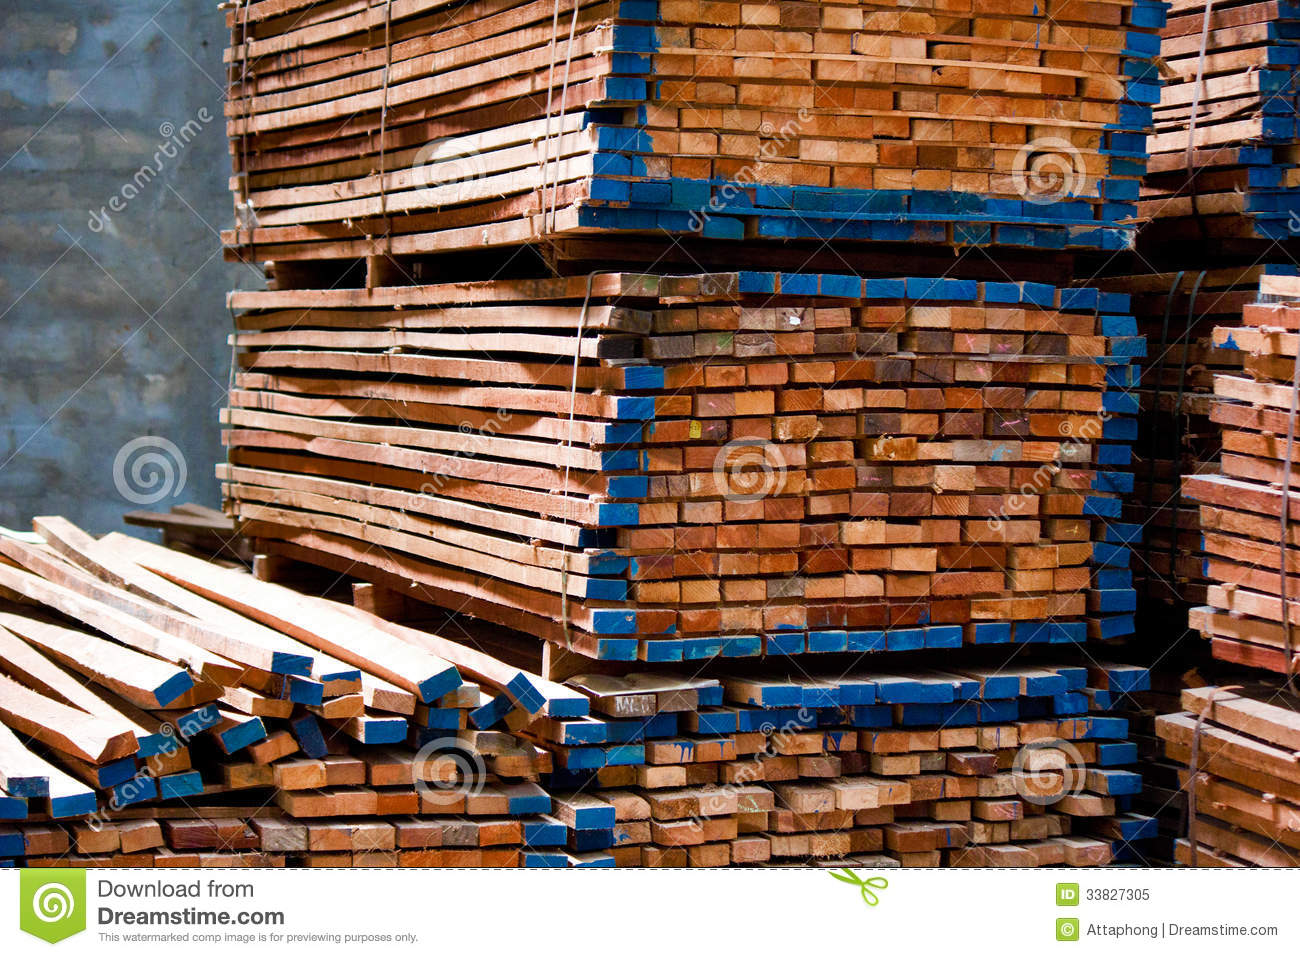 Lumber pile royalty free stock photo image